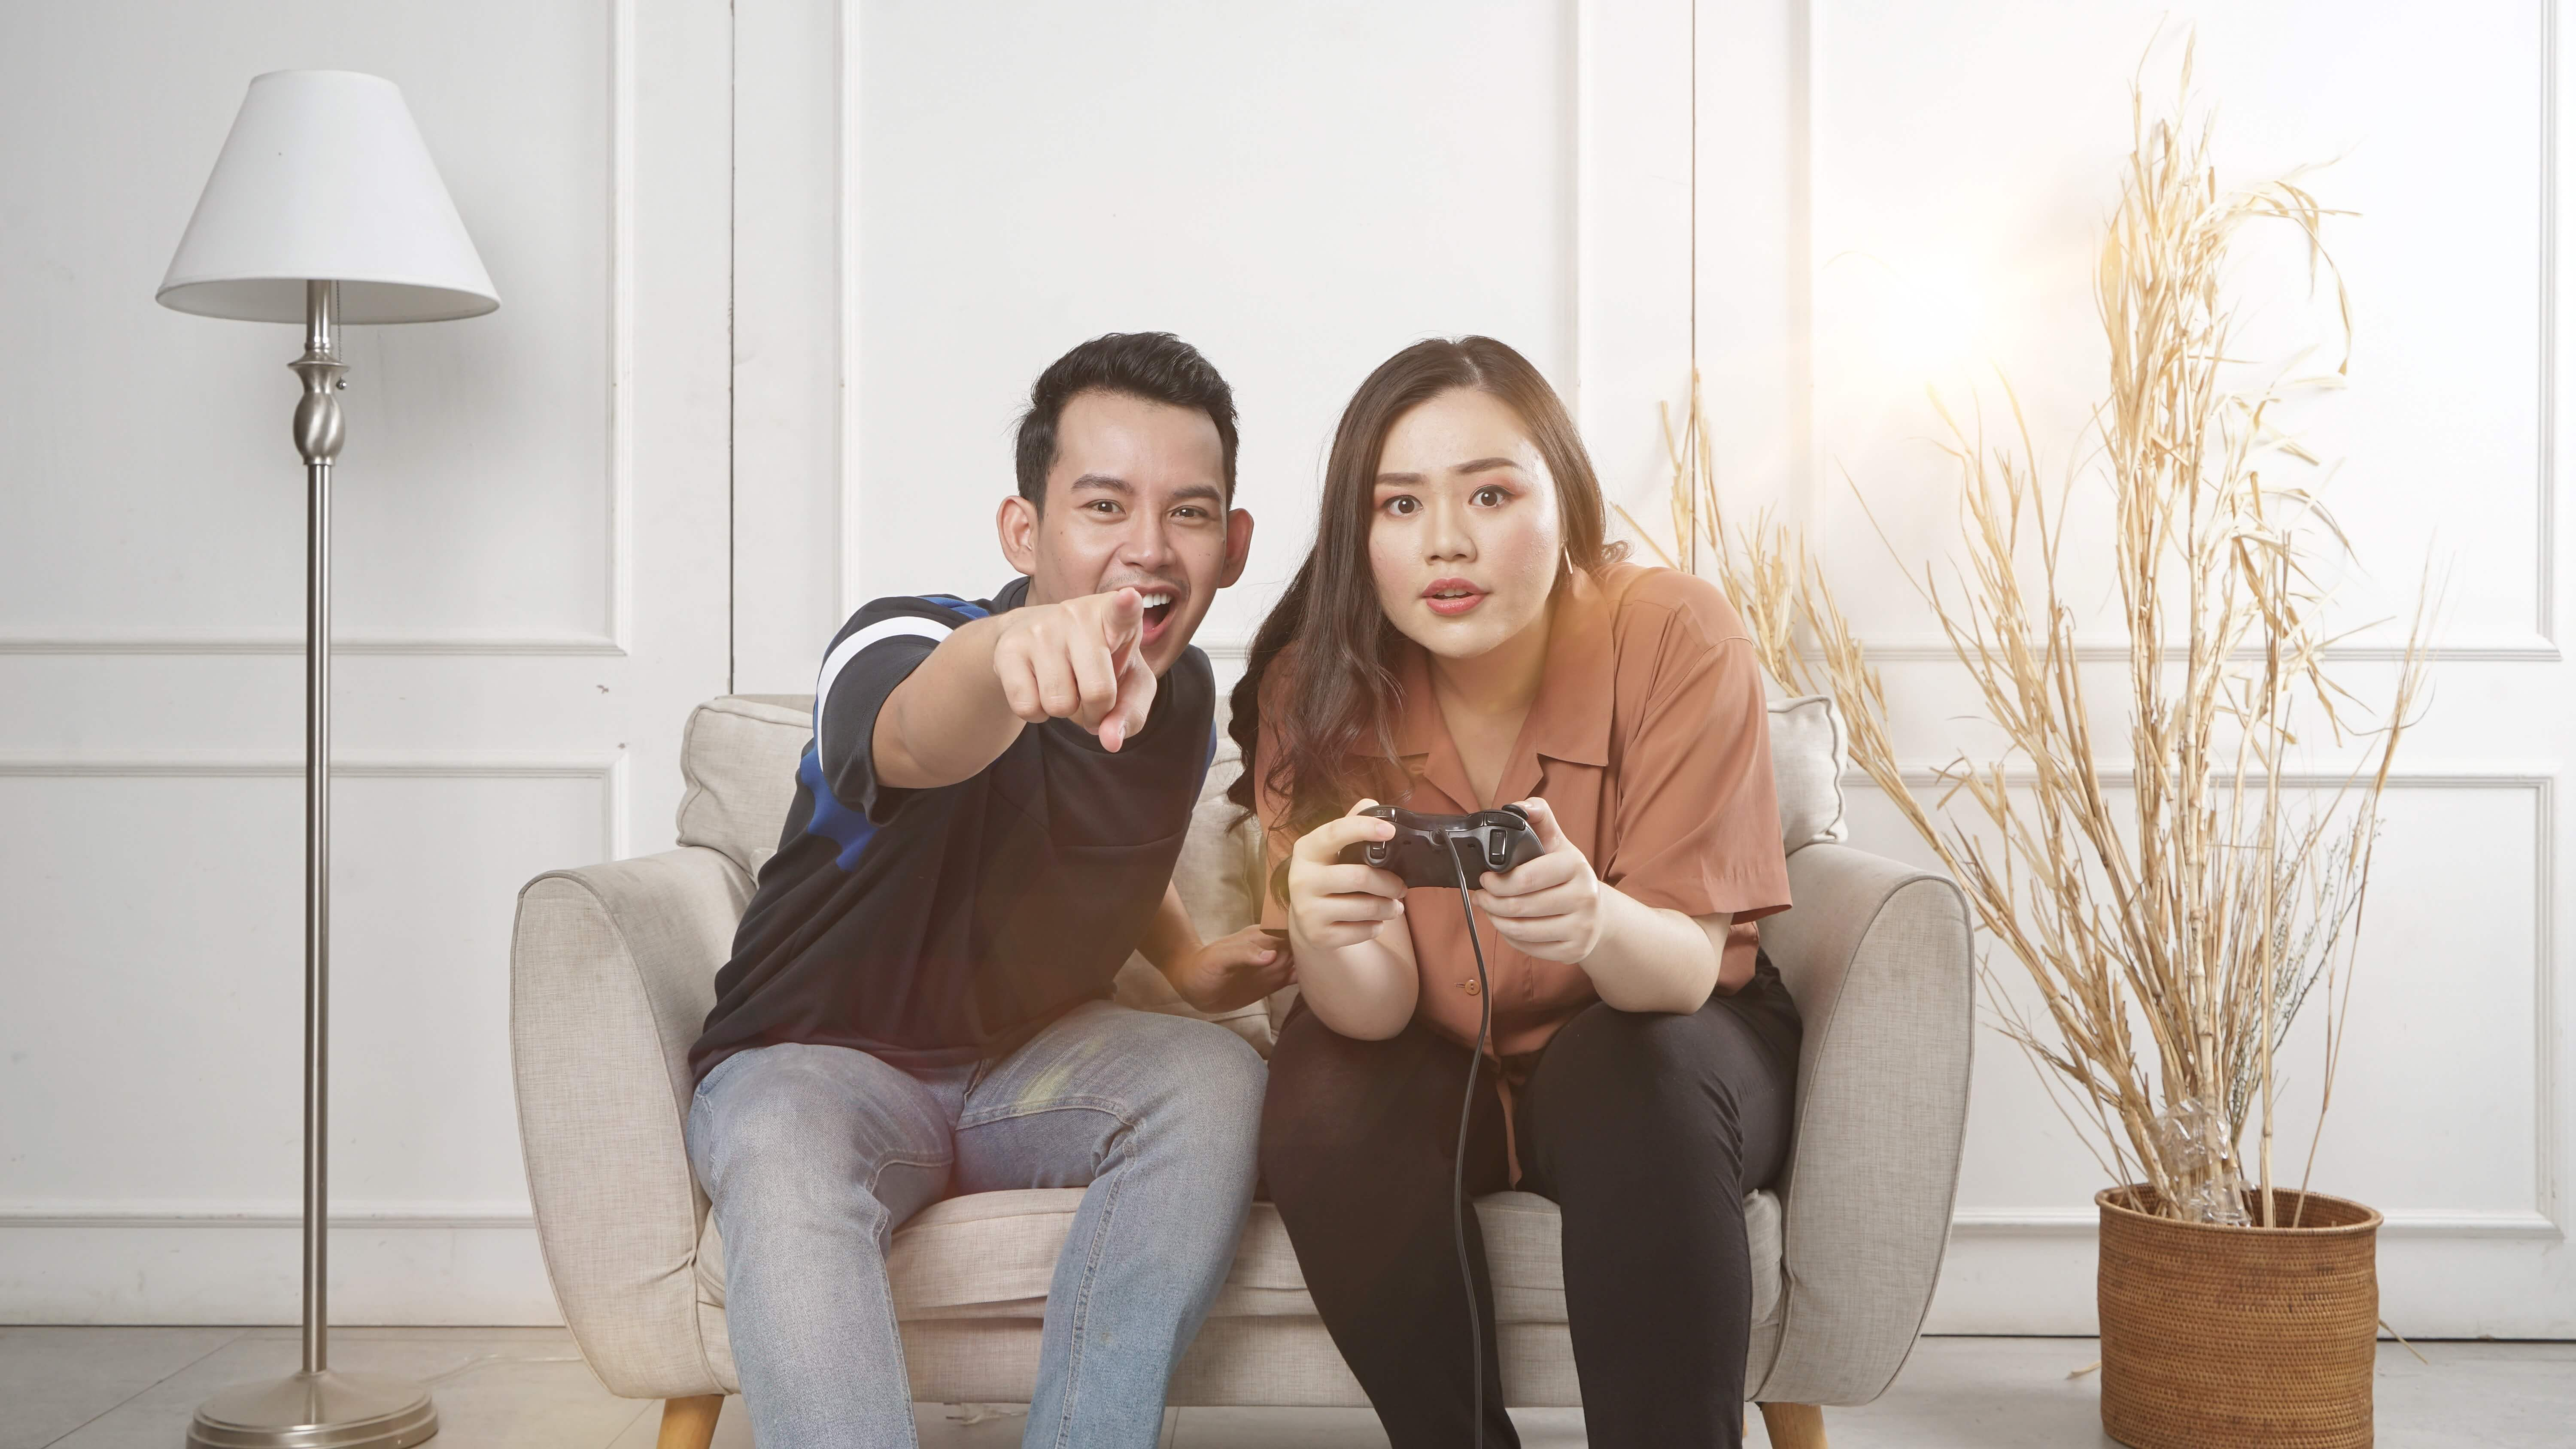 Gaming together as a couple